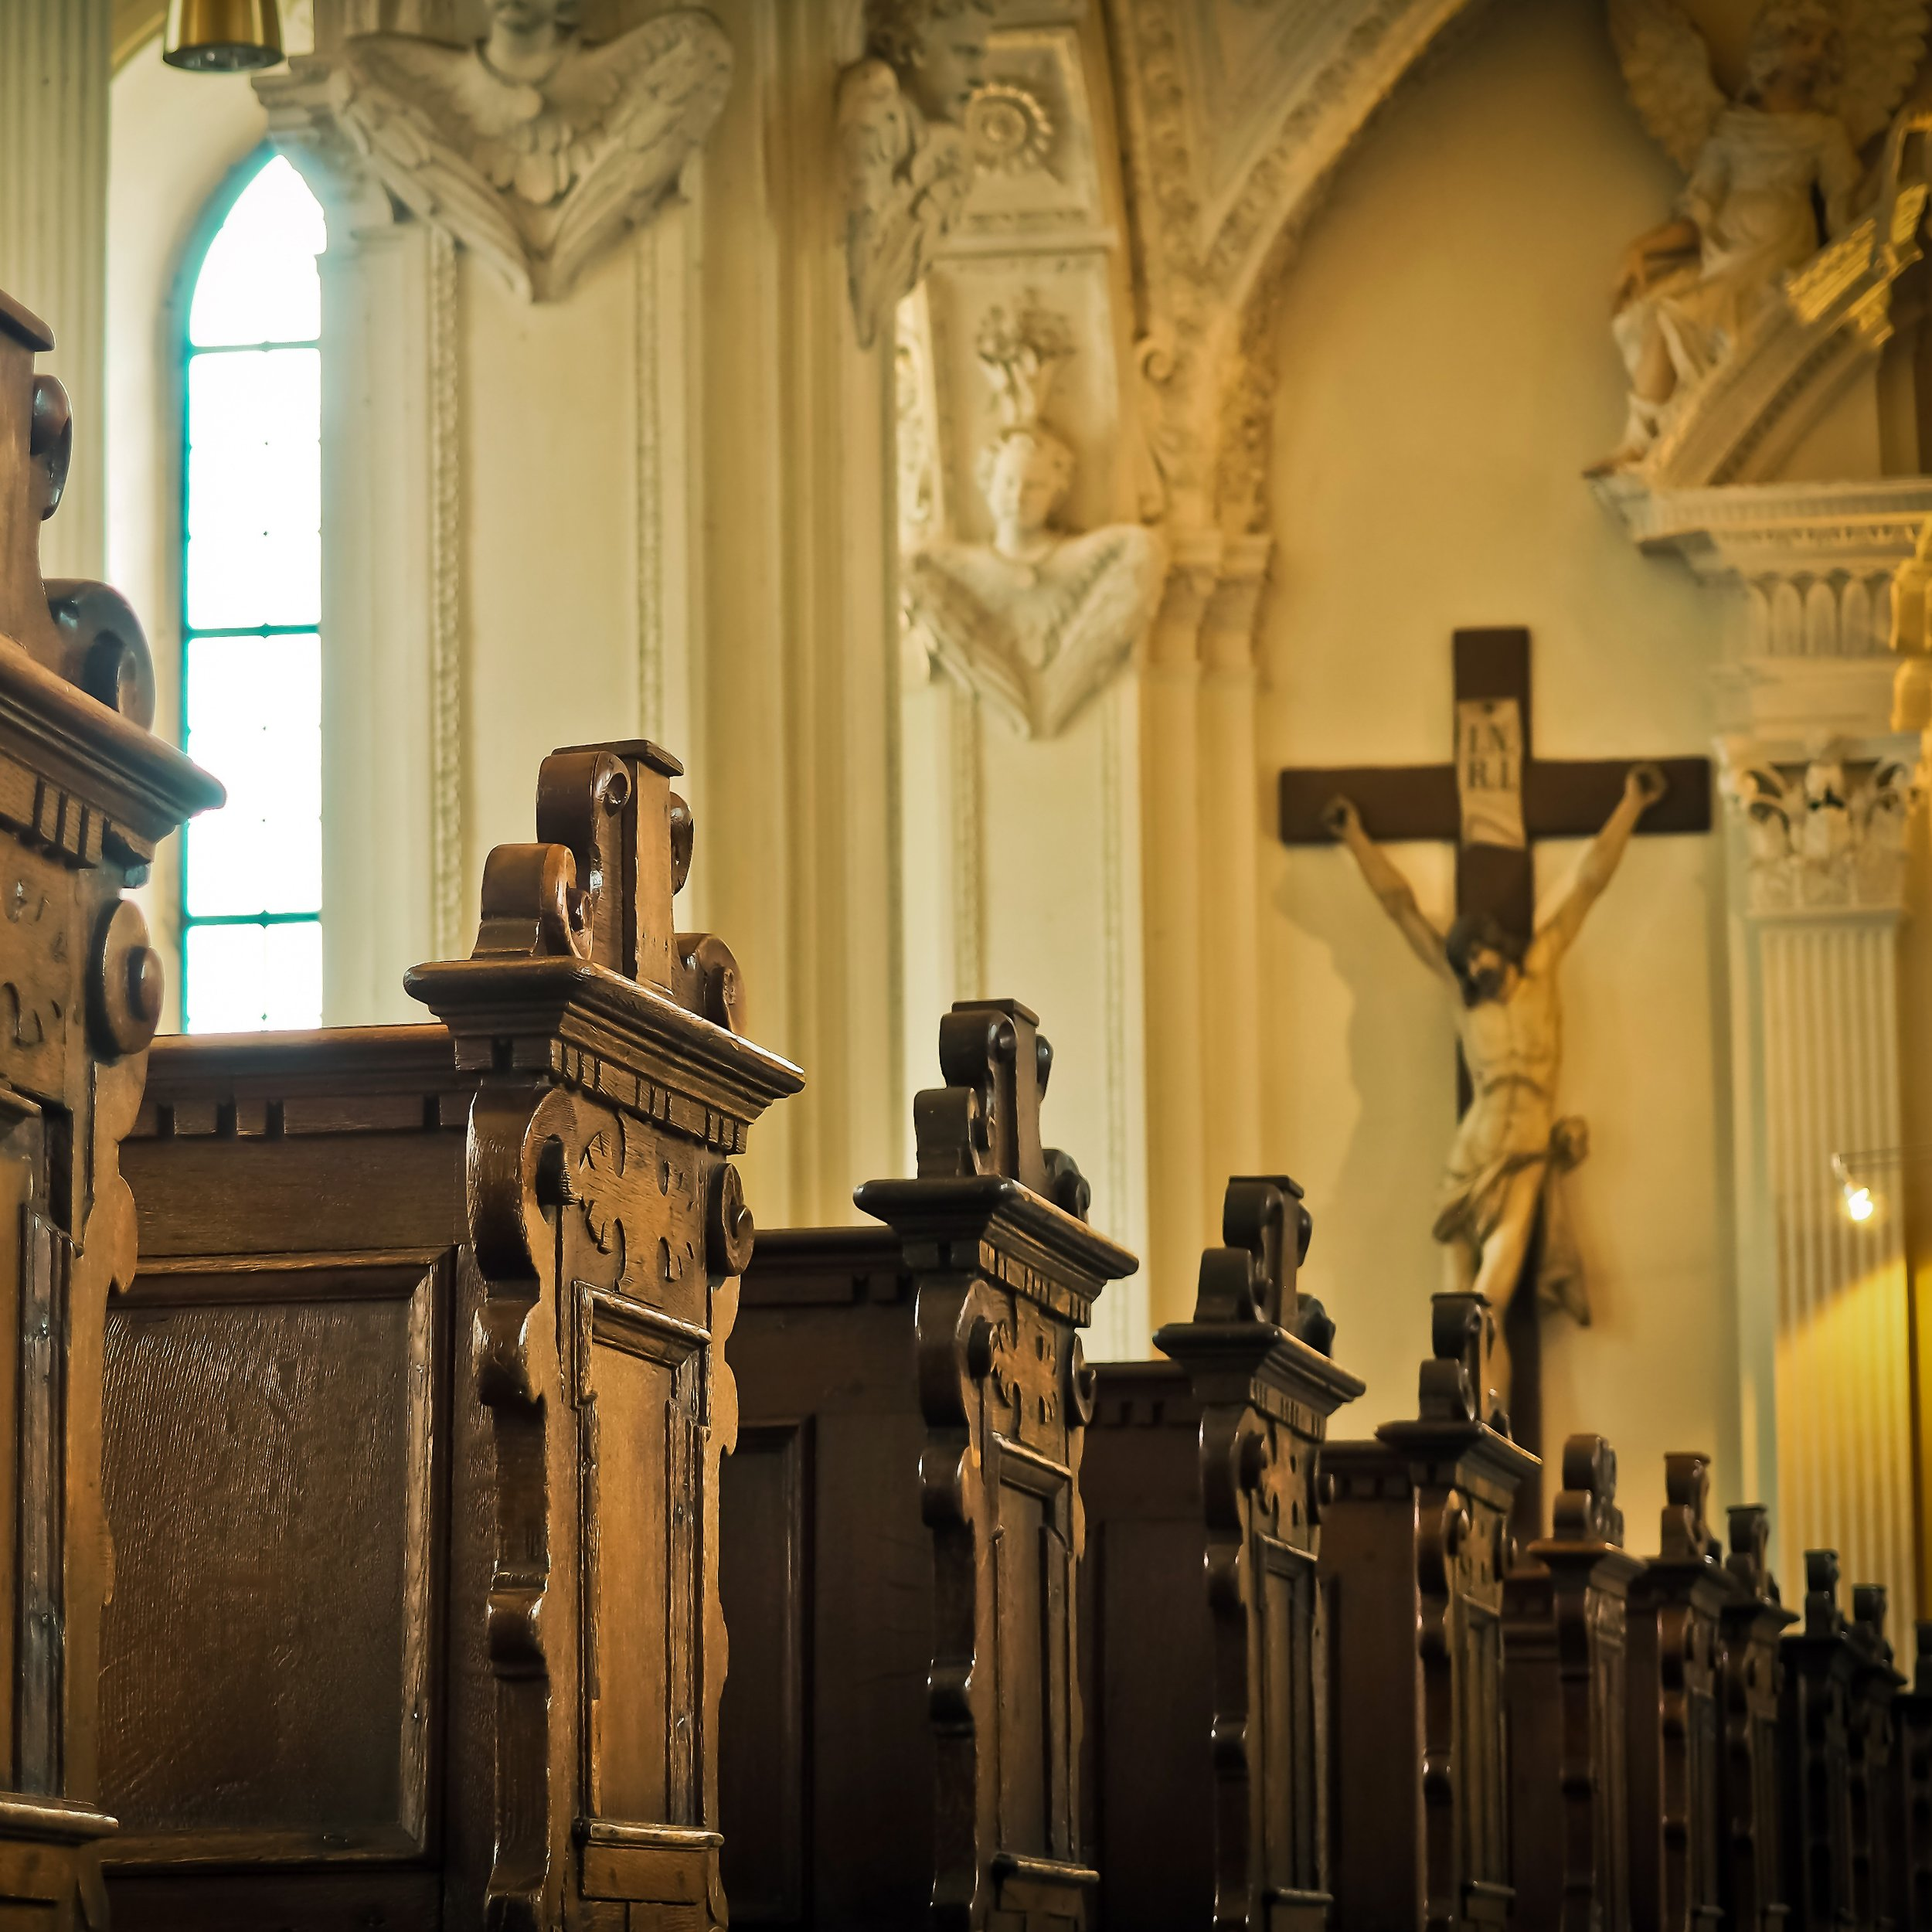 wood-old-column-religion-church-cathedral-582955-pxhere.com.jpg